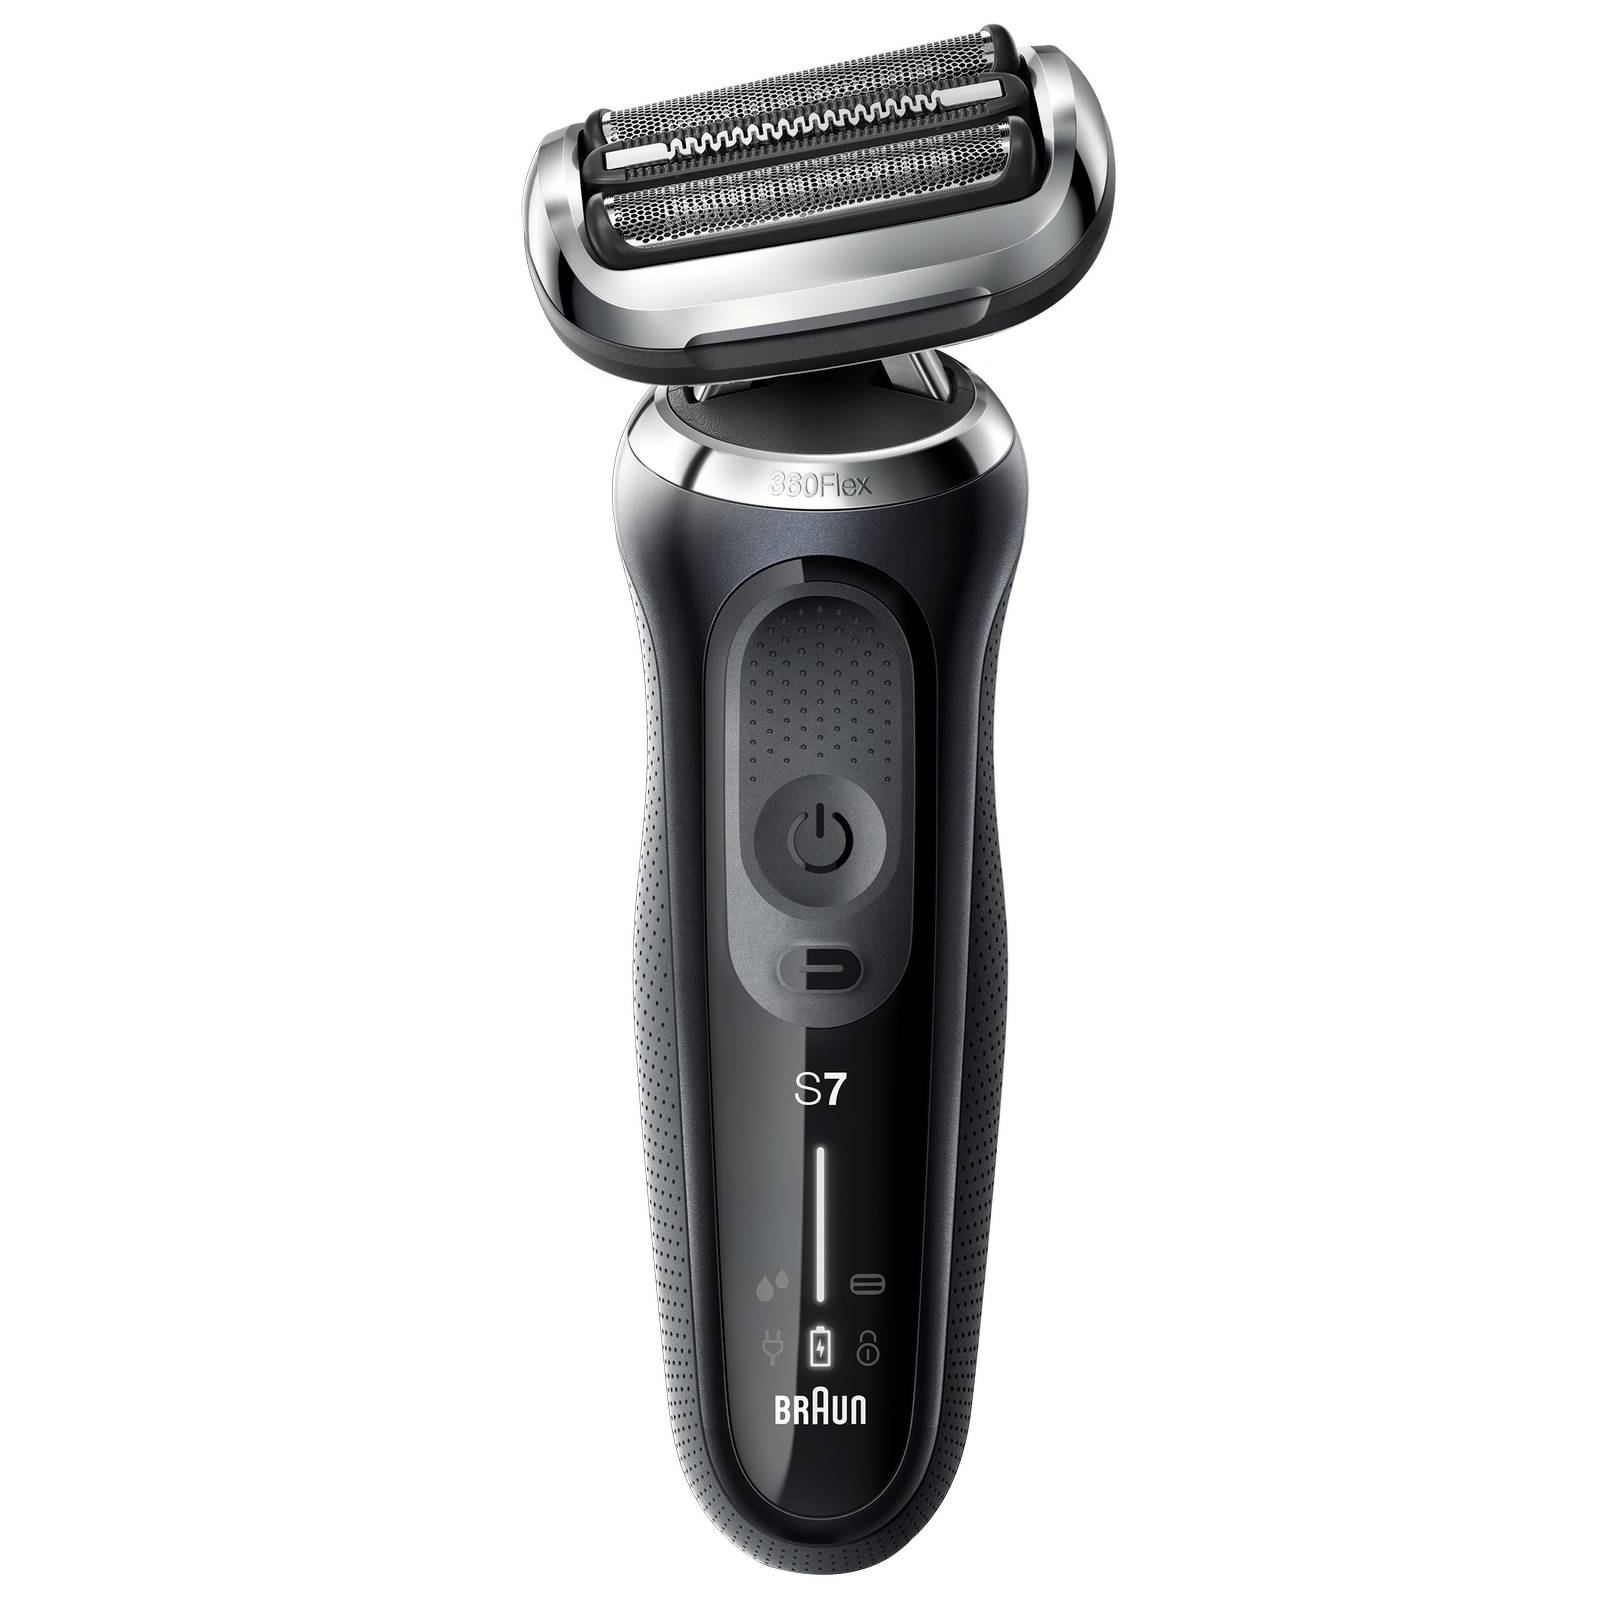 Braun - Series Shavers Series 7 70-N1200s Wet & Dry Shaver with Travel Case and 1 Attachment for Men